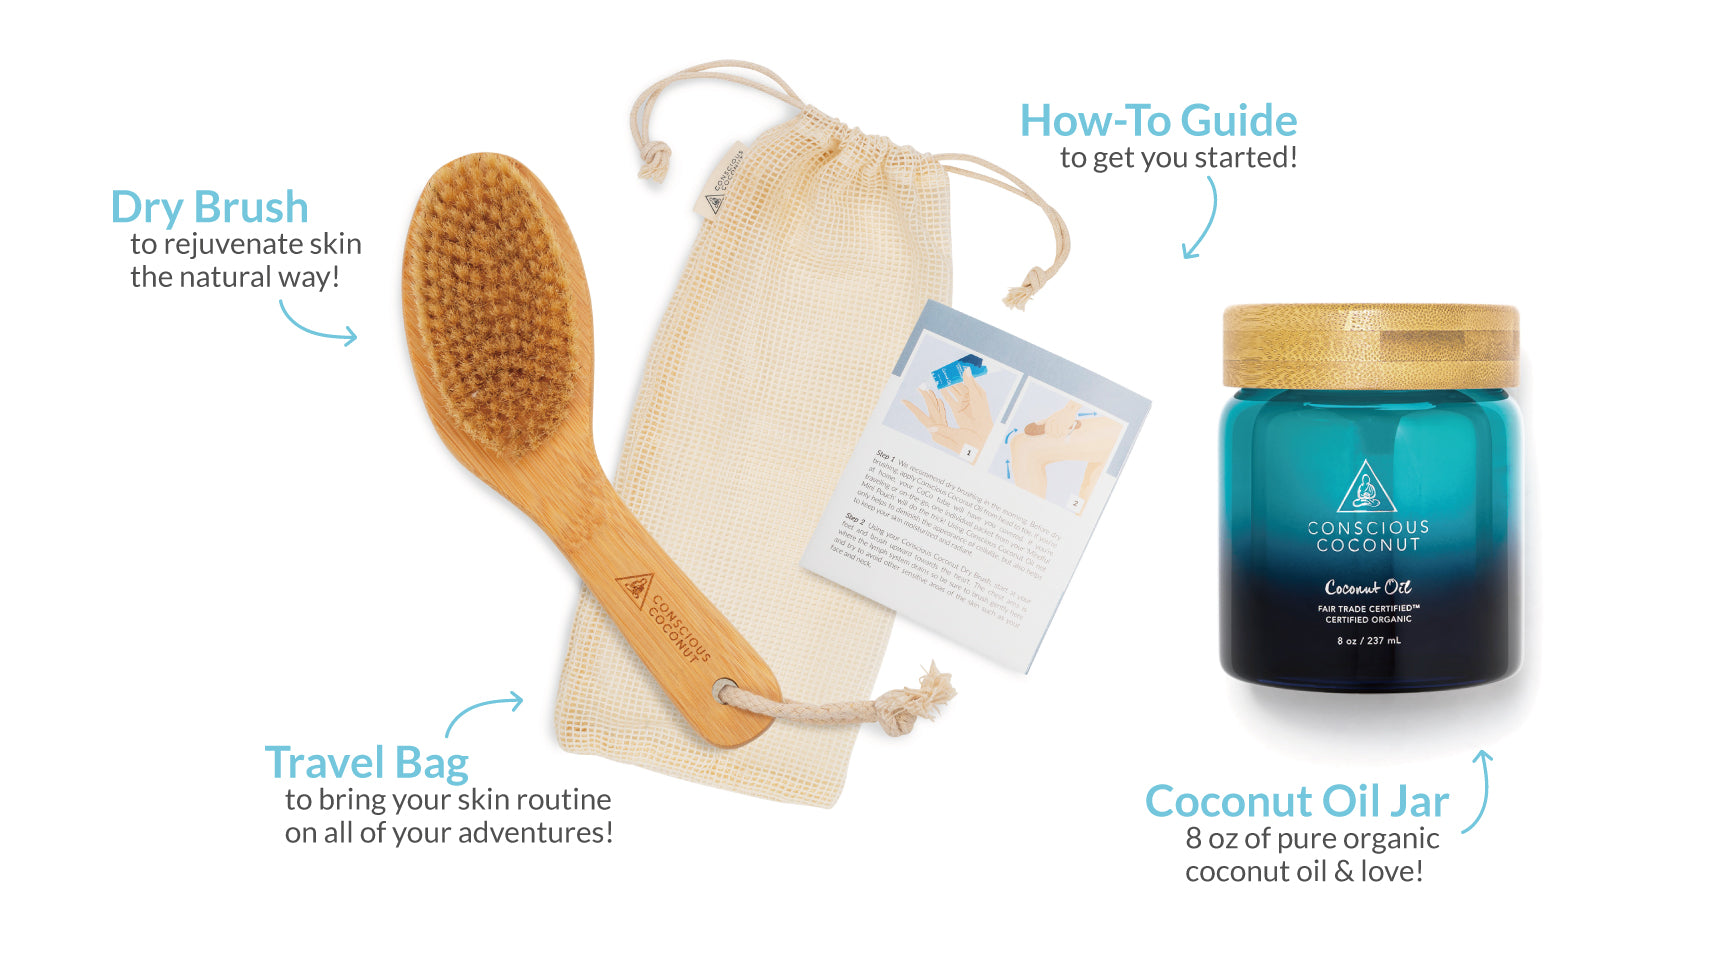 Dry Brush and Coconut Oil Jar